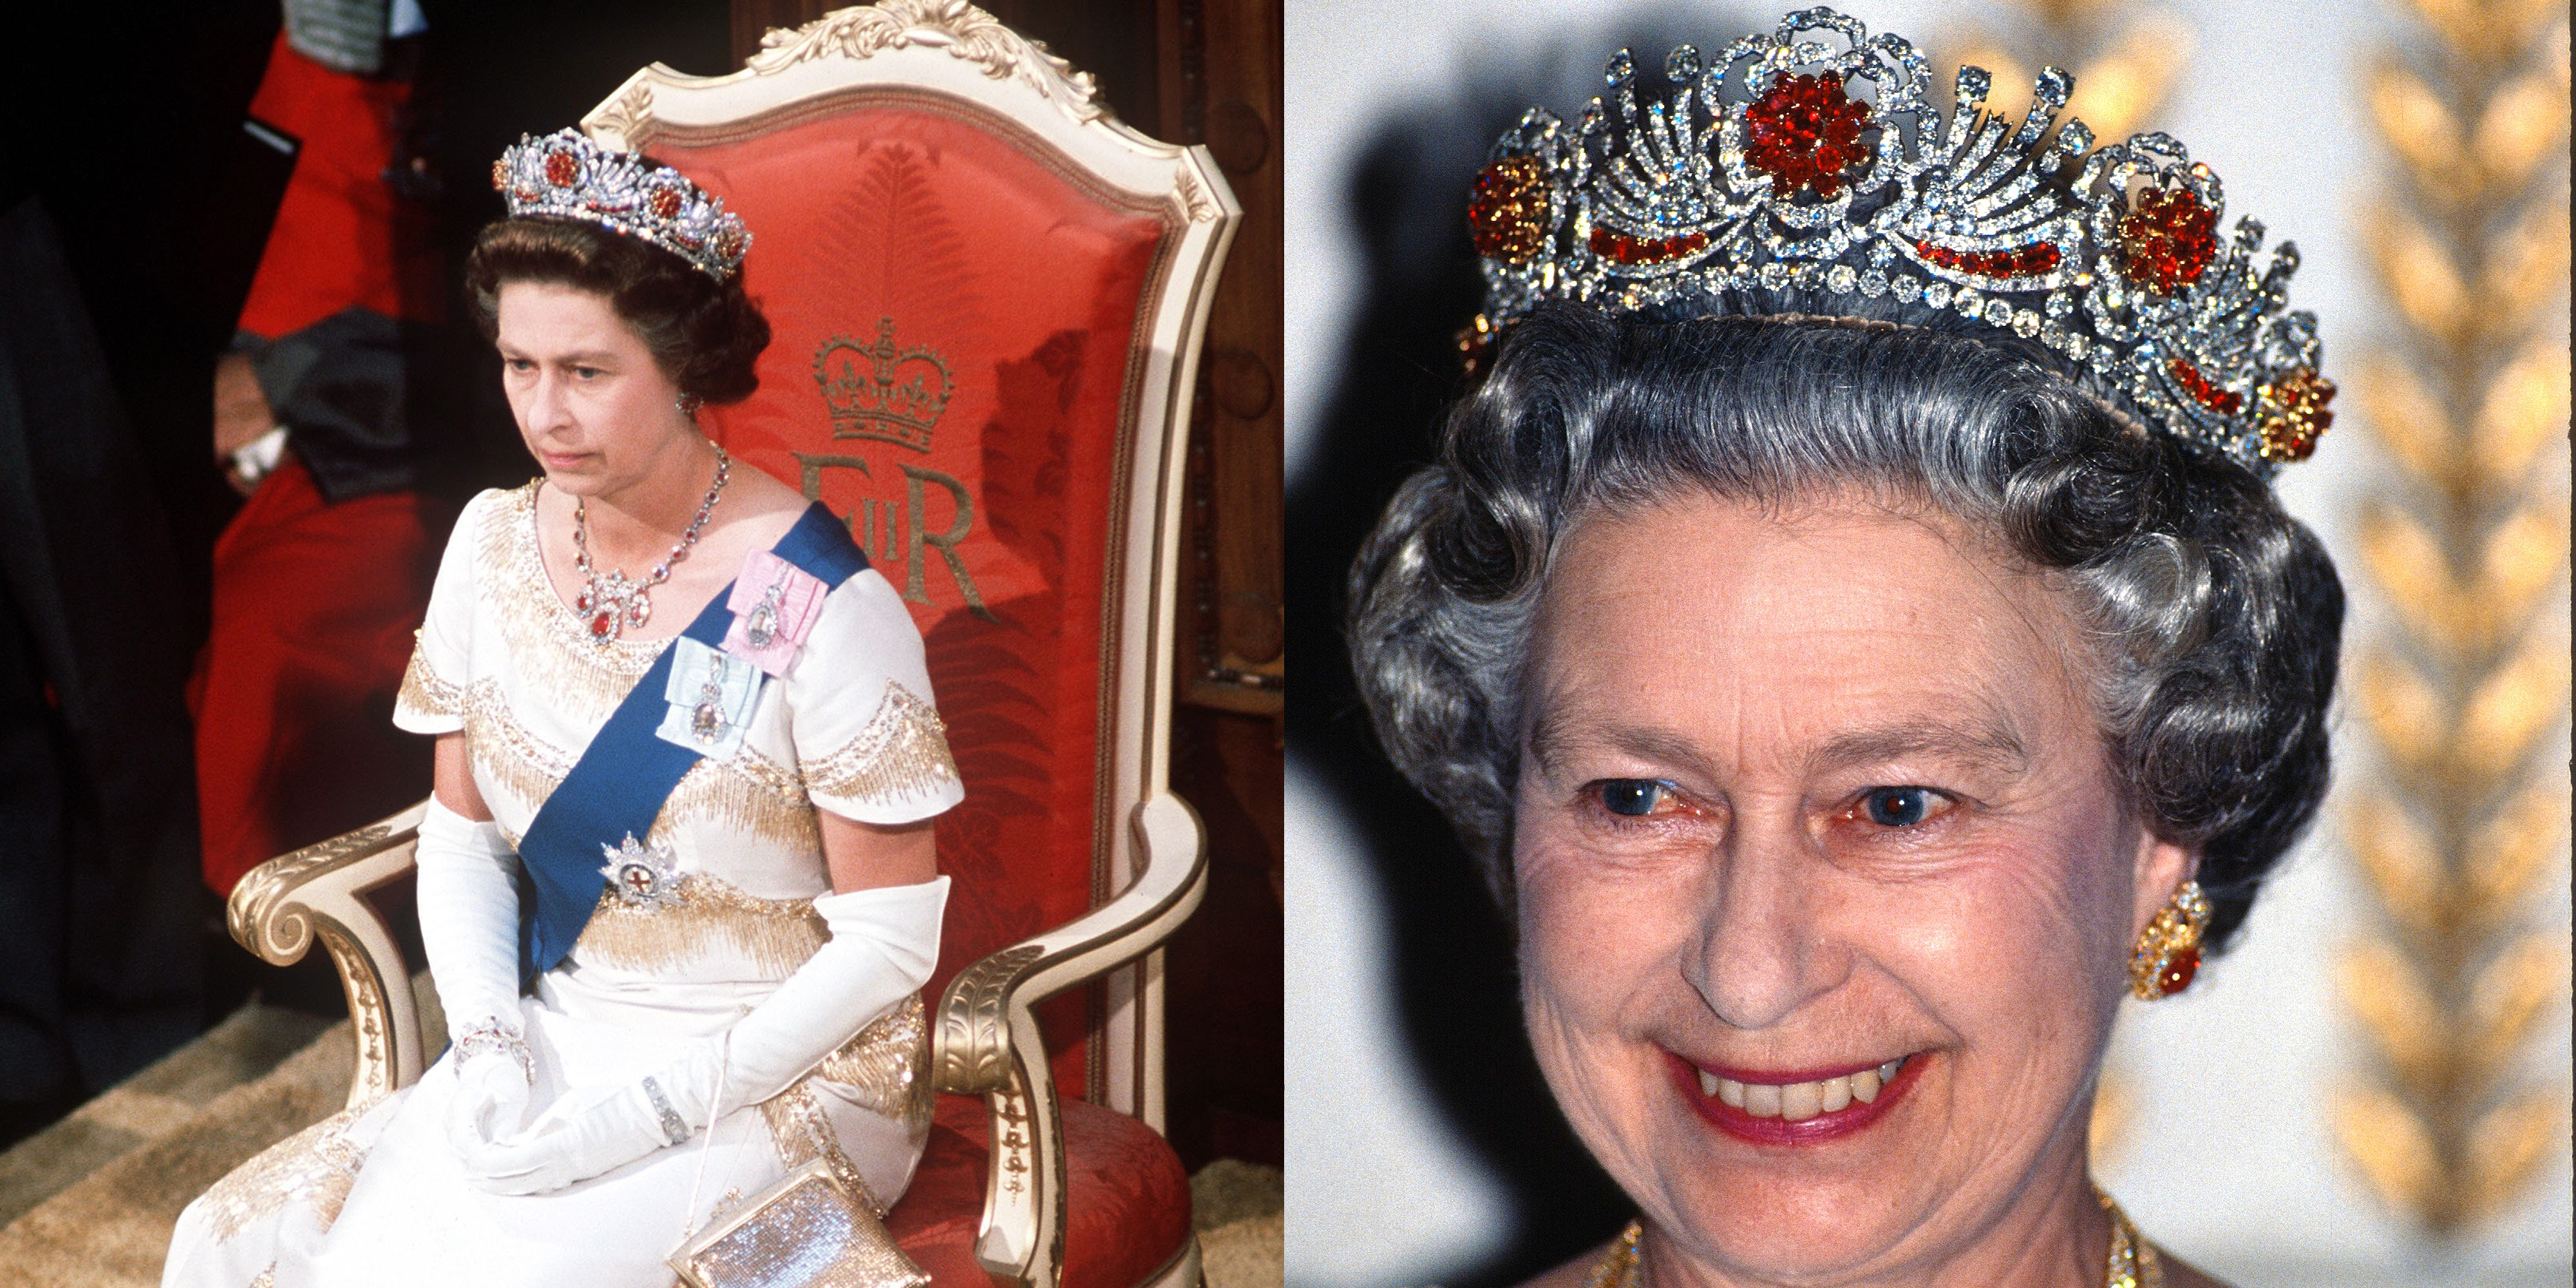 "<p>The queen was given almost 100 Burmese rubies for her wedding day, and had them made into a <a href=""http://orderofsplendor.blogspot.com/2012/05/tiara-thursday-burmese-ruby-tiara.html"" target=""_blank"" data-tracking-id=""recirc-text-link"">tiara</a> in 1973. She combined the rubies with diamonds made from a different dismantled tiara<span class=""redactor-invisible-space"" data-verified=""redactor"" data-redactor-tag=""span"" data-redactor-class=""redactor-invisible-space""></span>. #TooManyTiaras<span class=""redactor-invisible-space"" data-verified=""redactor"" data-redactor-tag=""span"" data-redactor-class=""redactor-invisible-space""></span></p>"